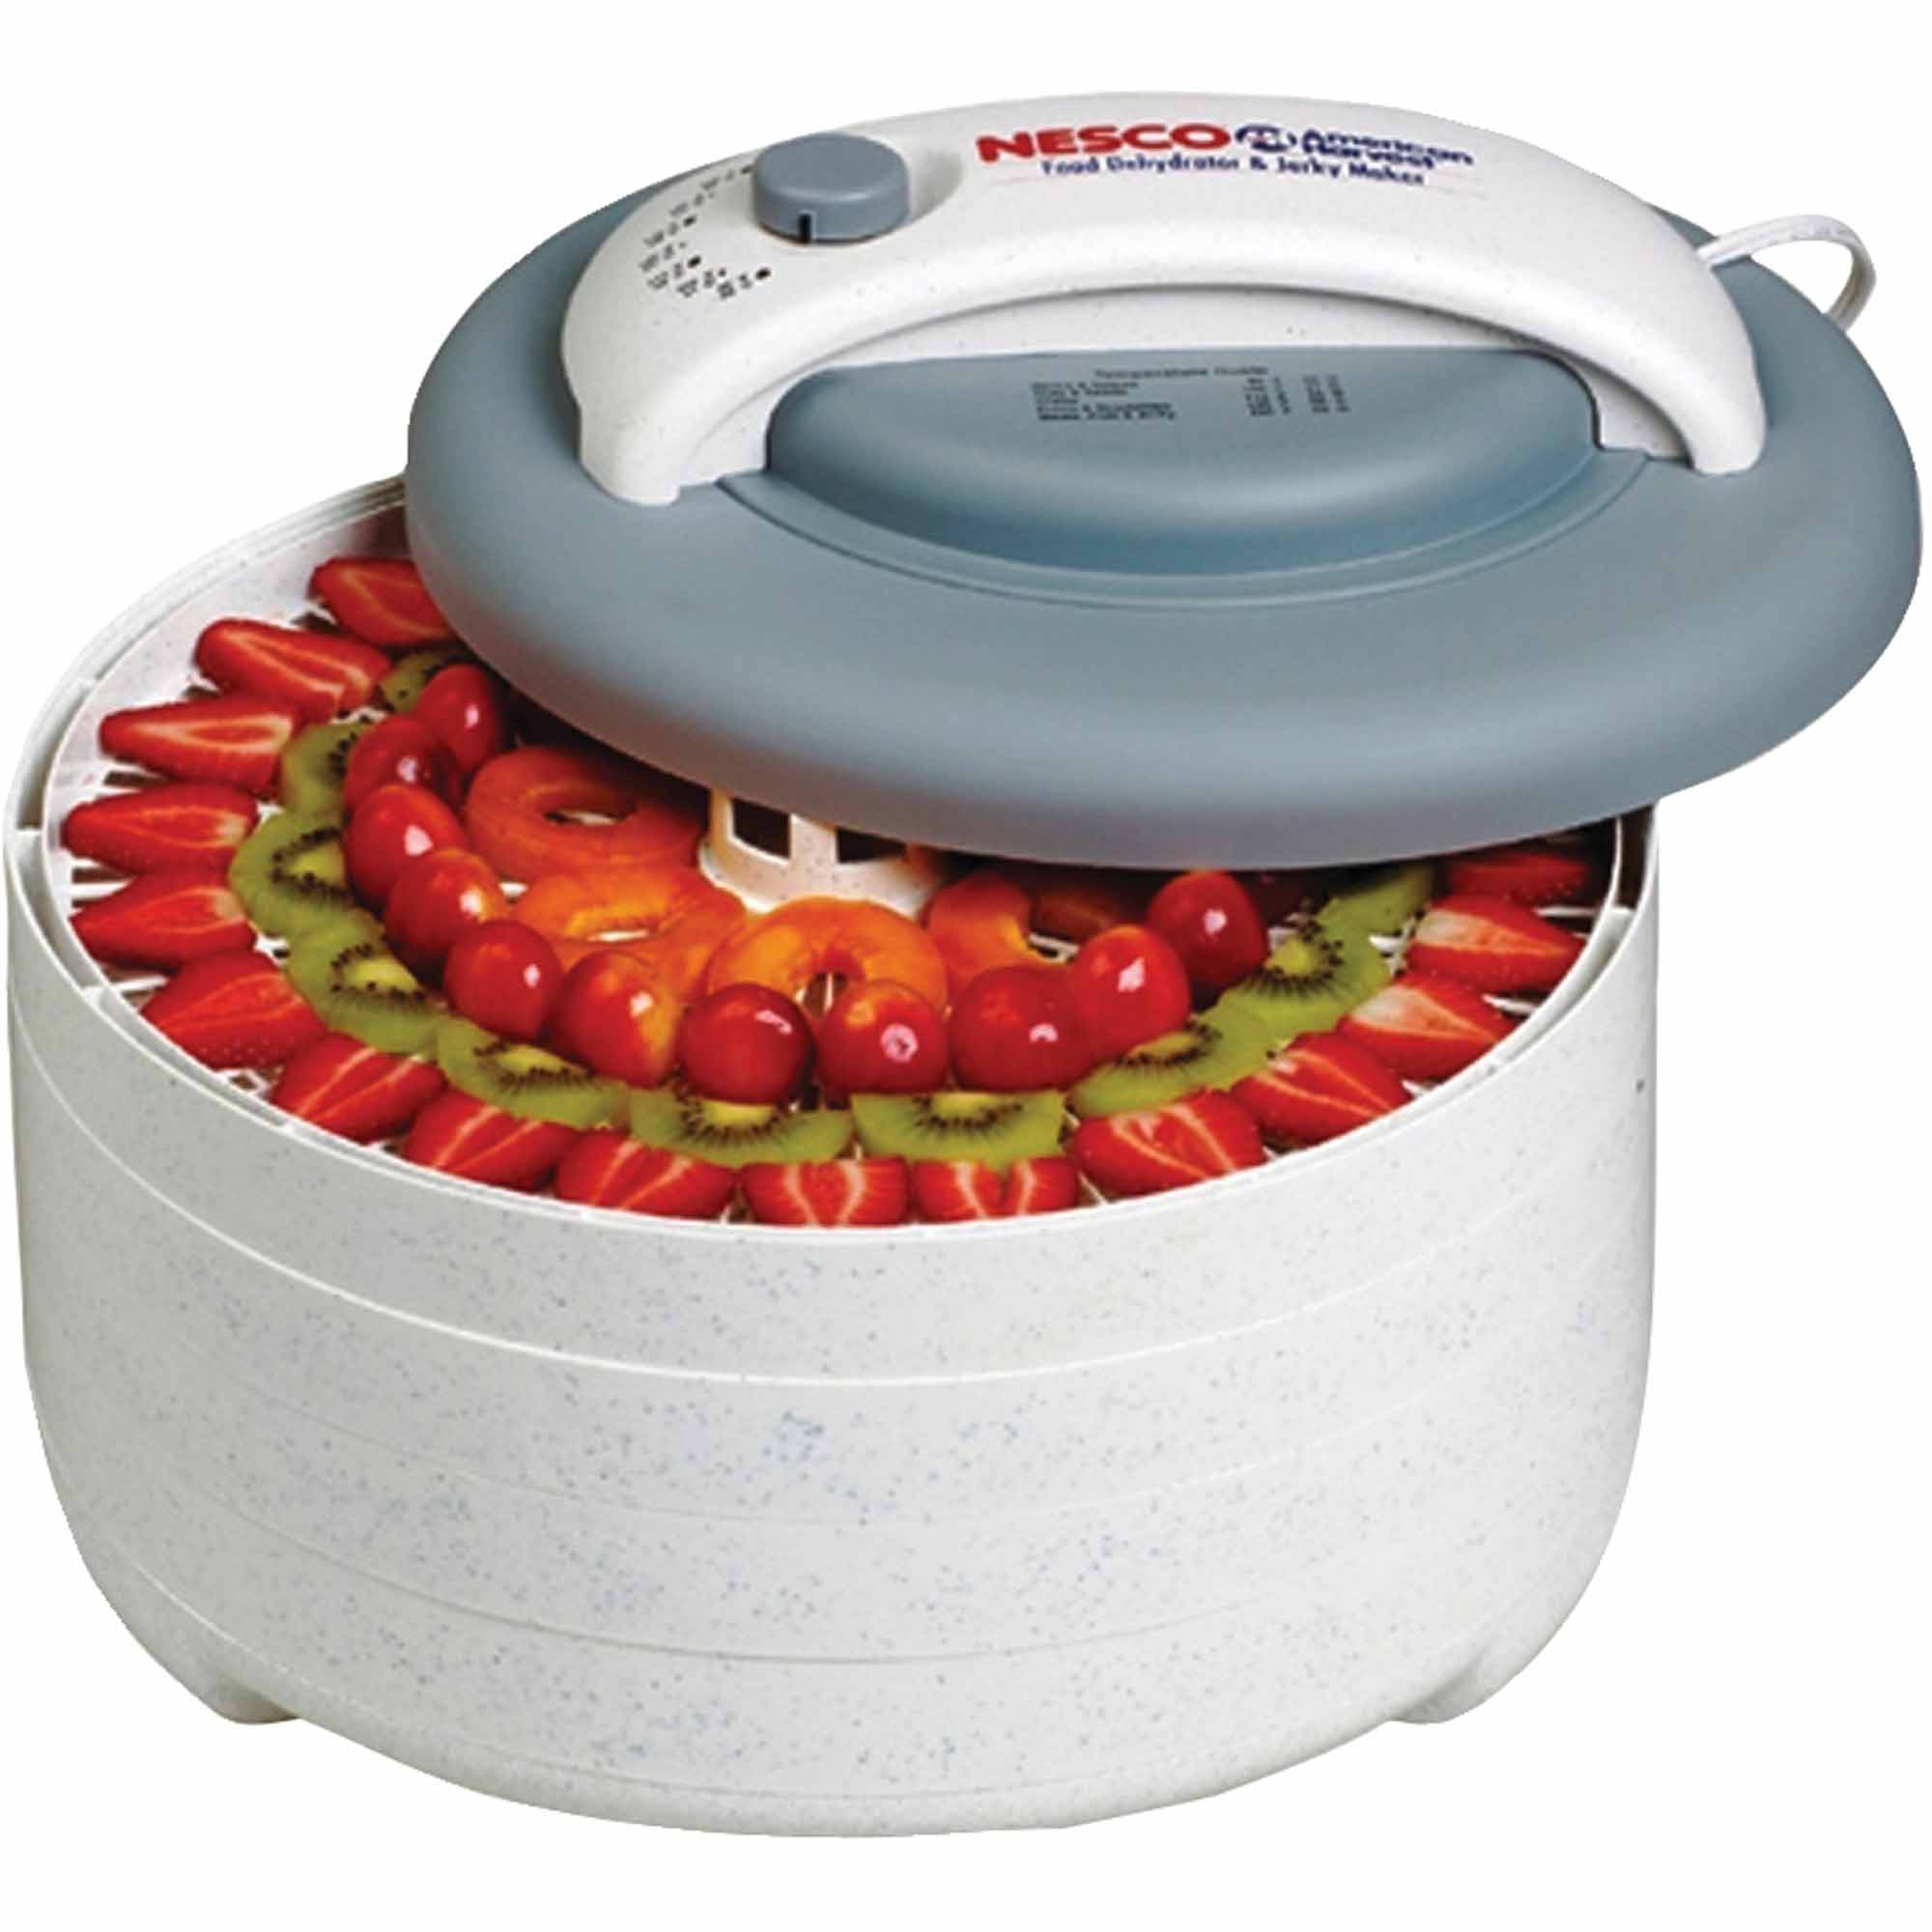 Nesco FD-61 500W Food Dehydrator